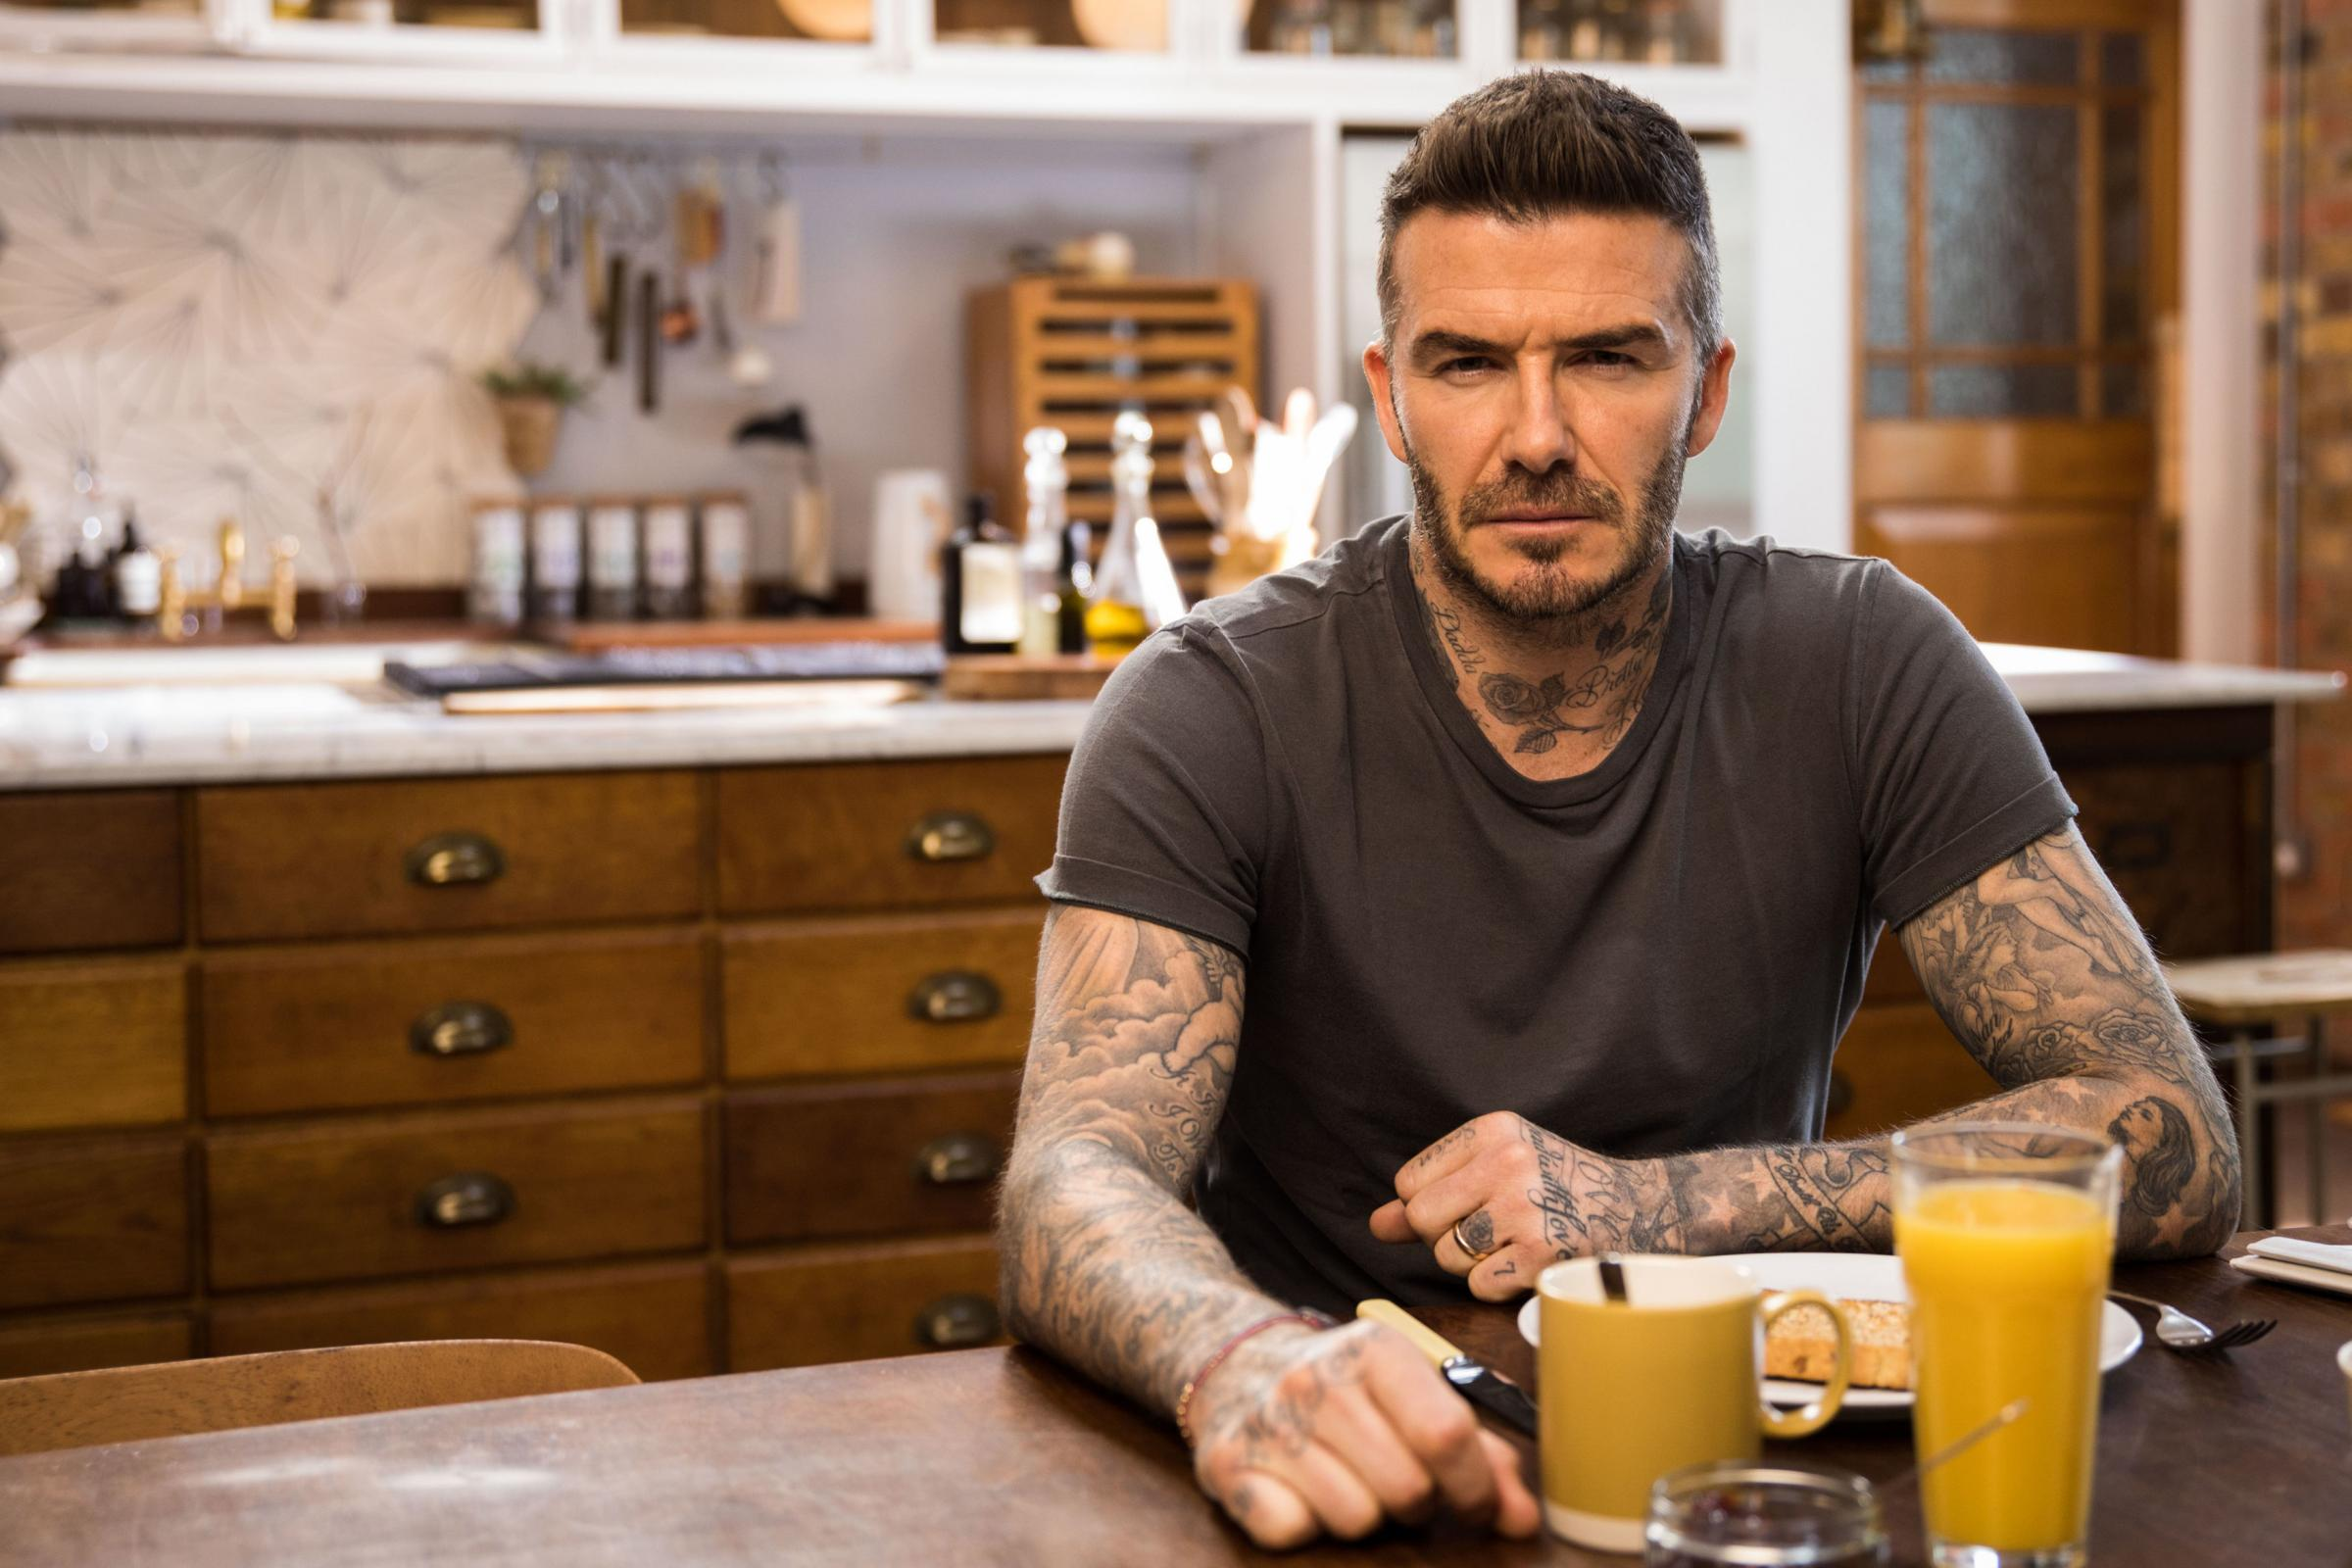 David Beckham, who is fronting the Malaria Must Die, So Millions Can Live campaign.